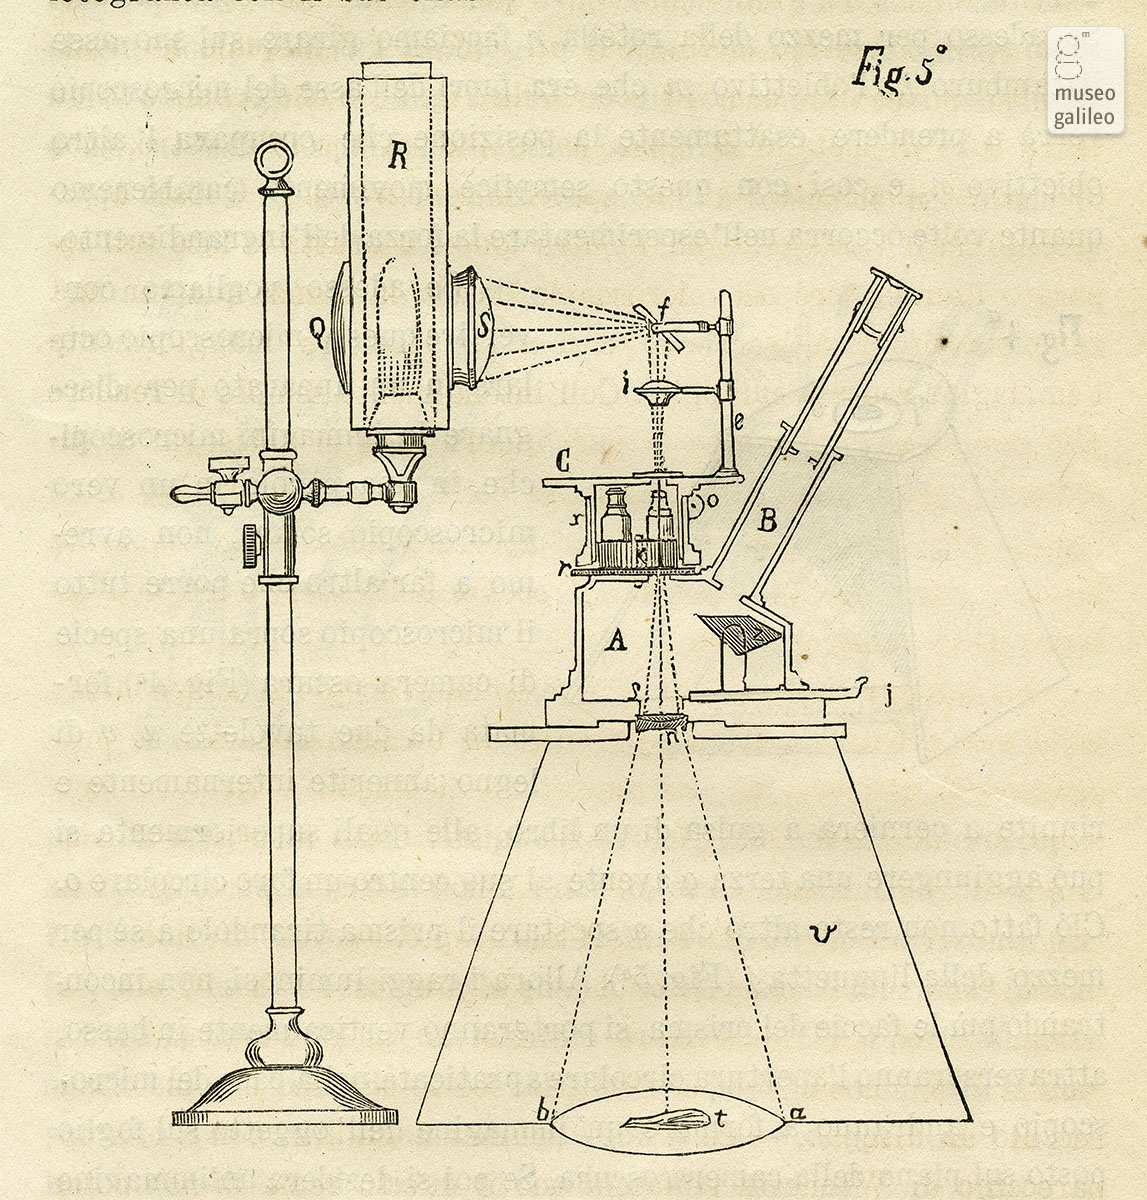 Microscopio a camera oscura (1869)